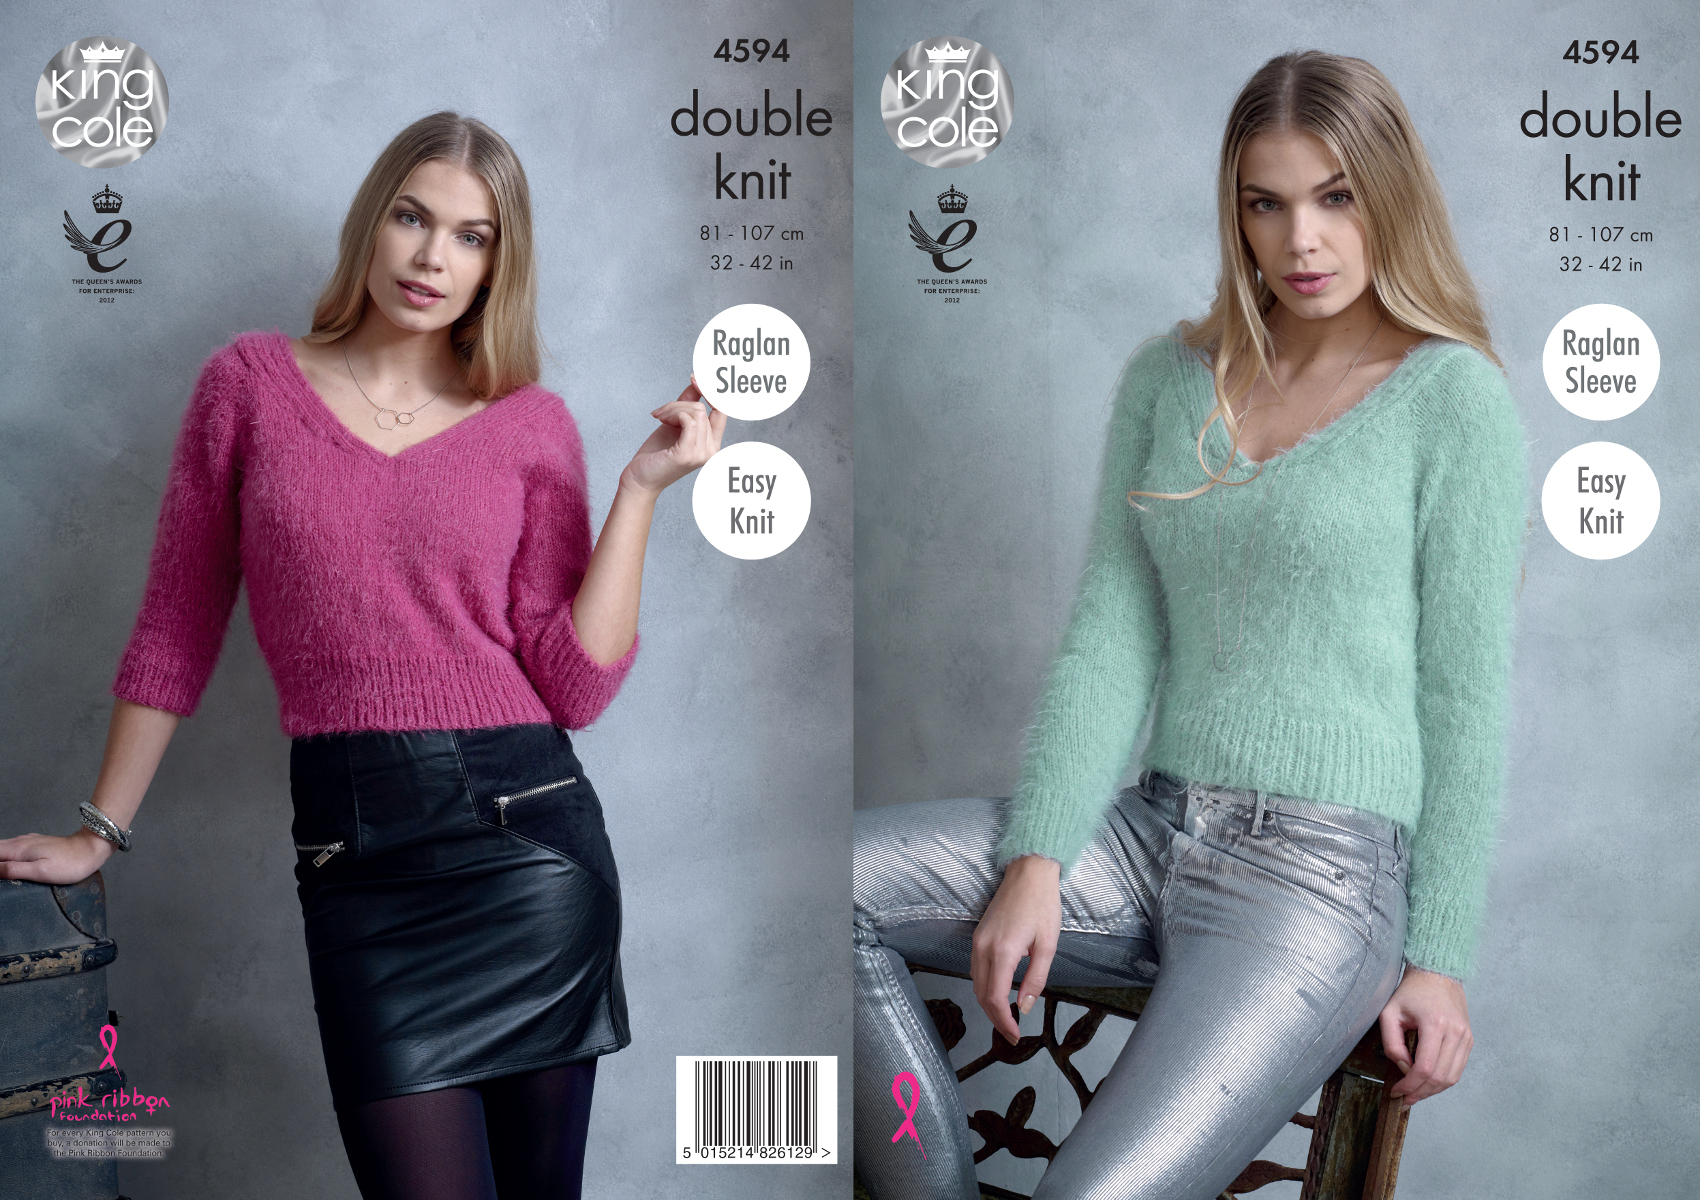 King Cole 4594 Knitting Pattern Womens Sweaters  in King Cole Embrace DK